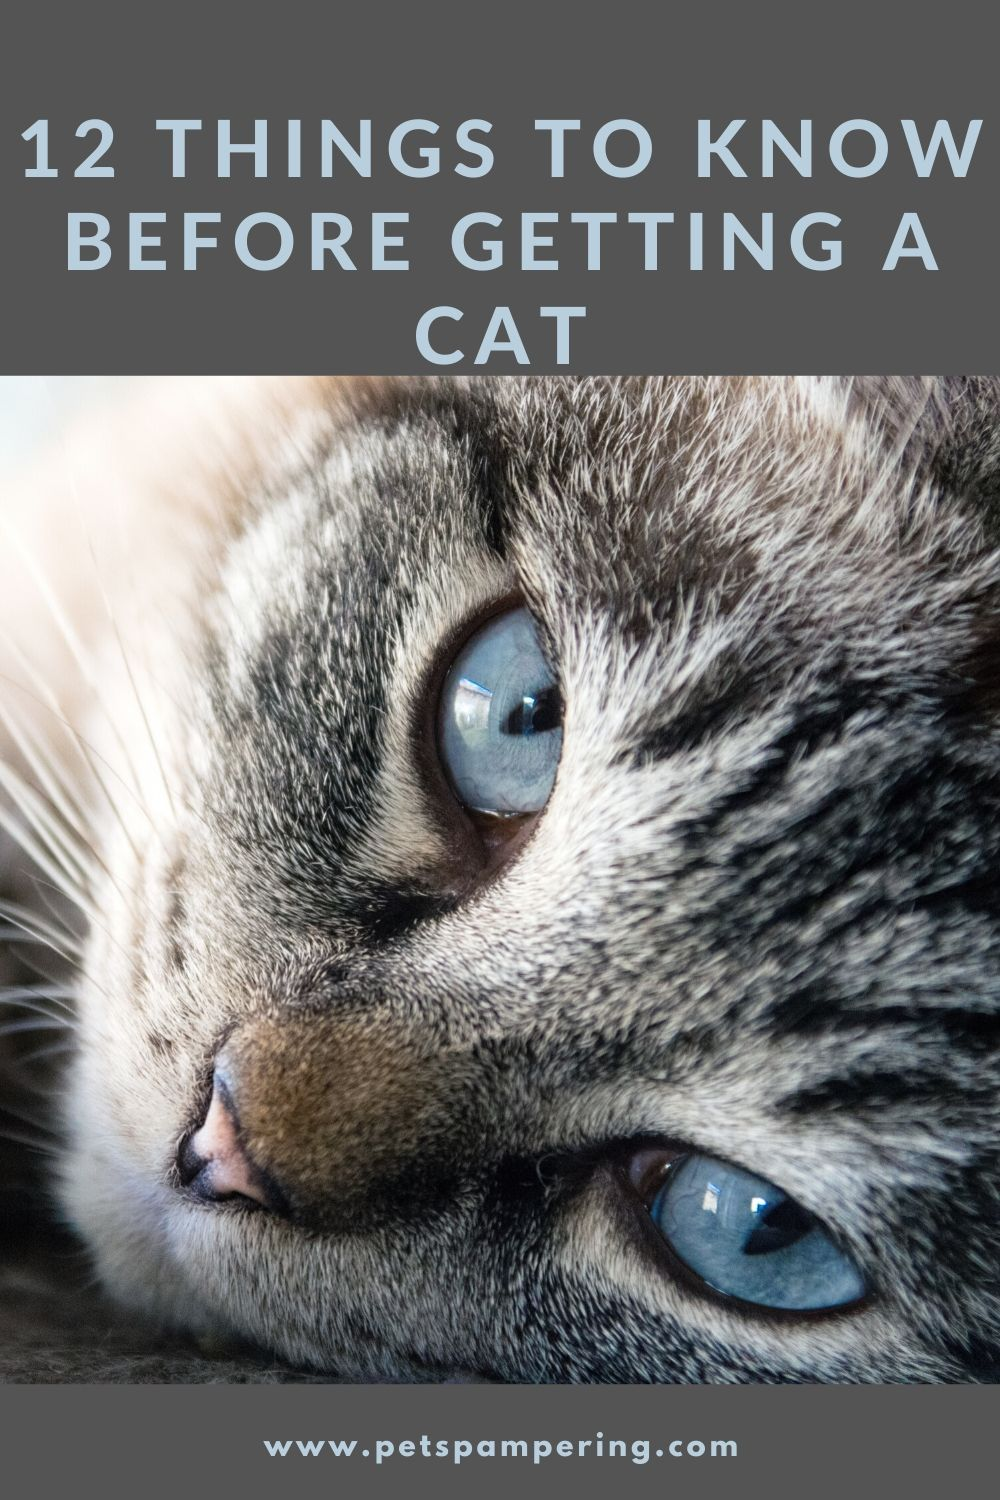 12 Things to Know Before Getting A Cat. Essentials Of Cats  How To Keeping Your Cats Happy Indoors?  Cats are really beautiful animals. They make great and fun-loving pets. But there are some points you must know before bringing a new cat home. And especially when you are a complete beginner and never had a cat before you must read this article. #cats #catsofinstagram #cat #of #catstagram #instagram #catlover #catlovers #instacat #meow #catlife #pets #kittens #kitten #kitty #catoftheday #cute